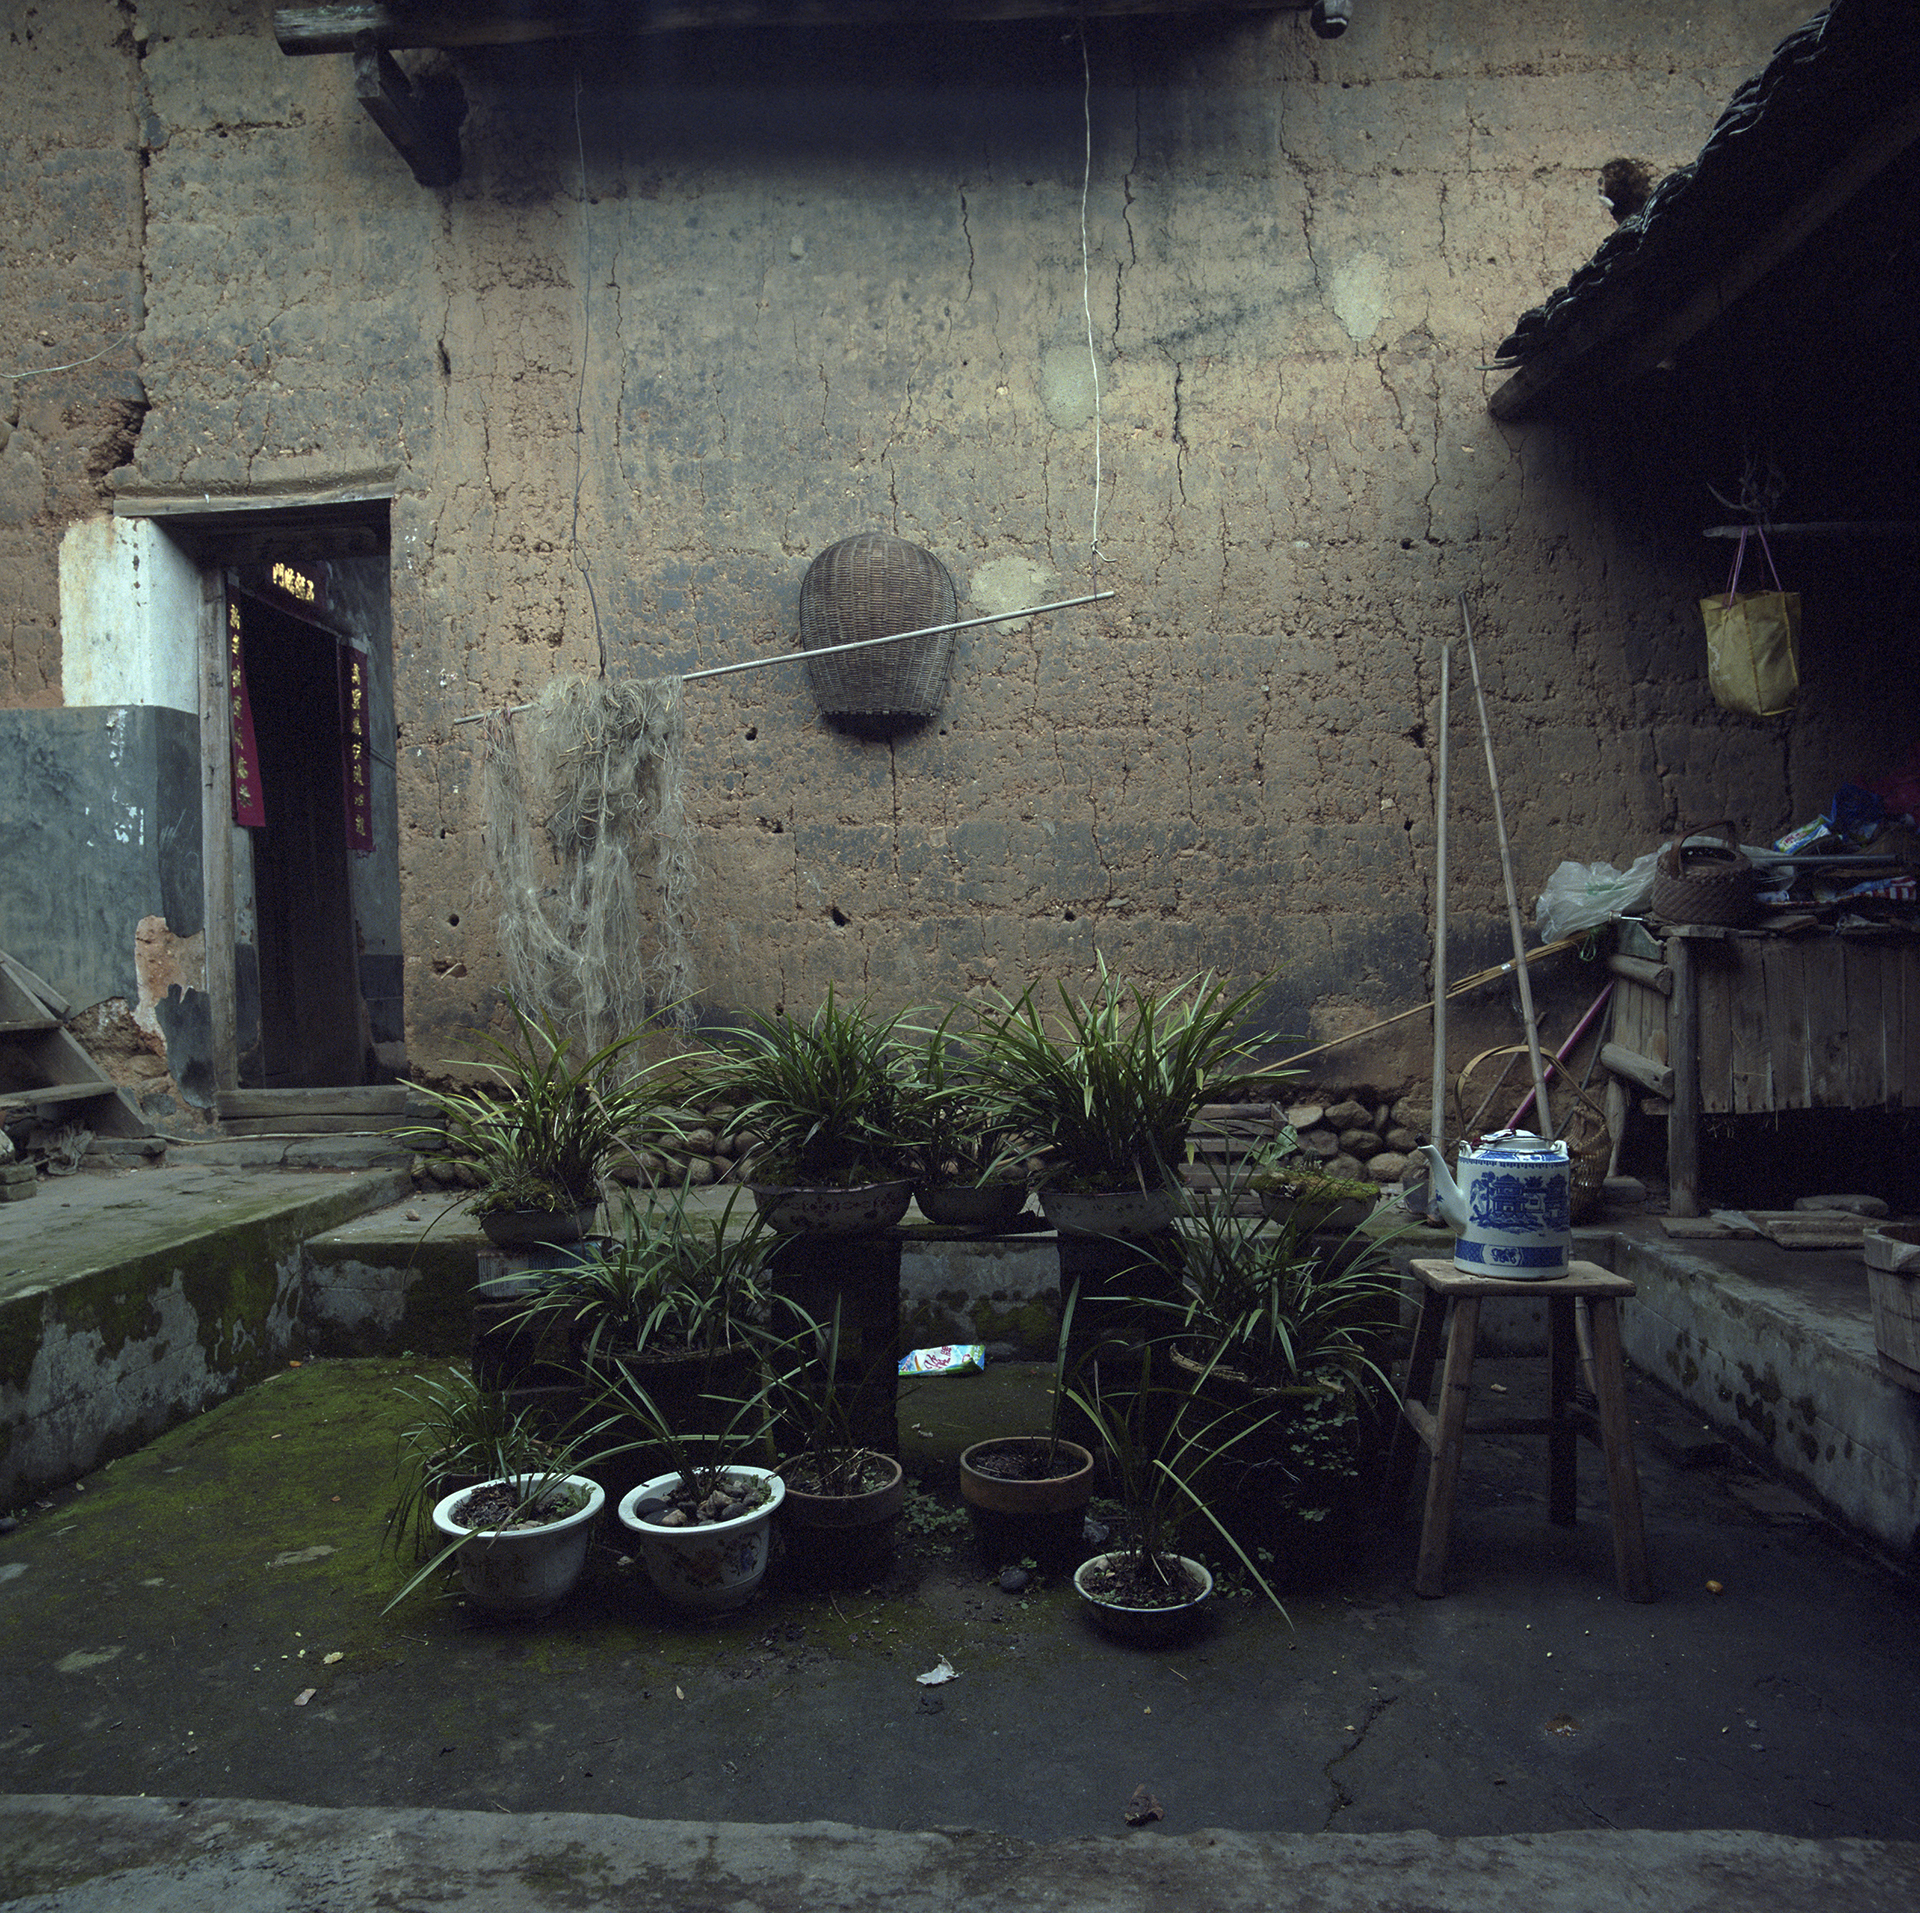 2009 Fujian - nice inner court.The basin has long been the only water source. Now there is a running tap in the village.